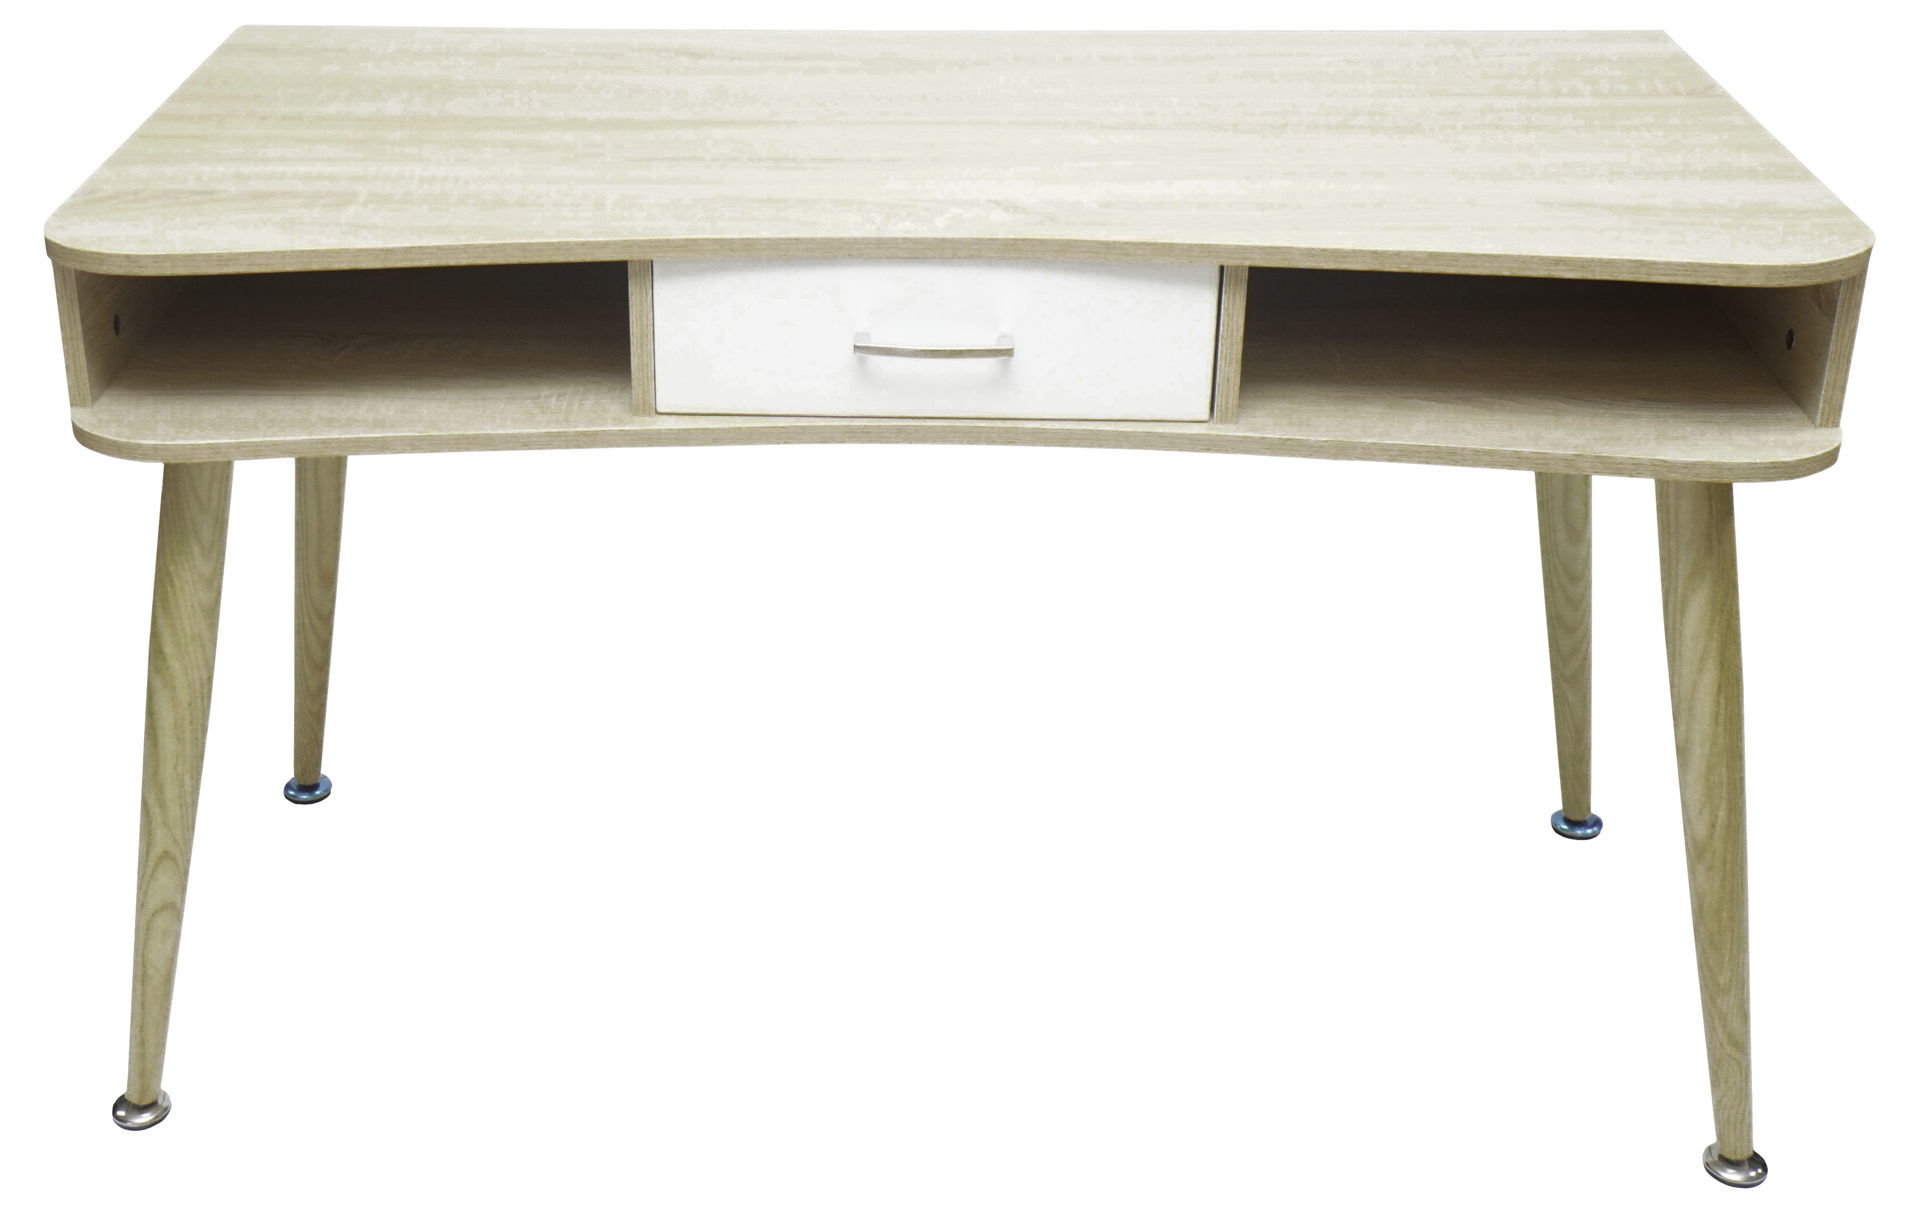 Picture of HX-001  Ulink 1200 x 600 Computer Desk w/Middle Drawer - Pine